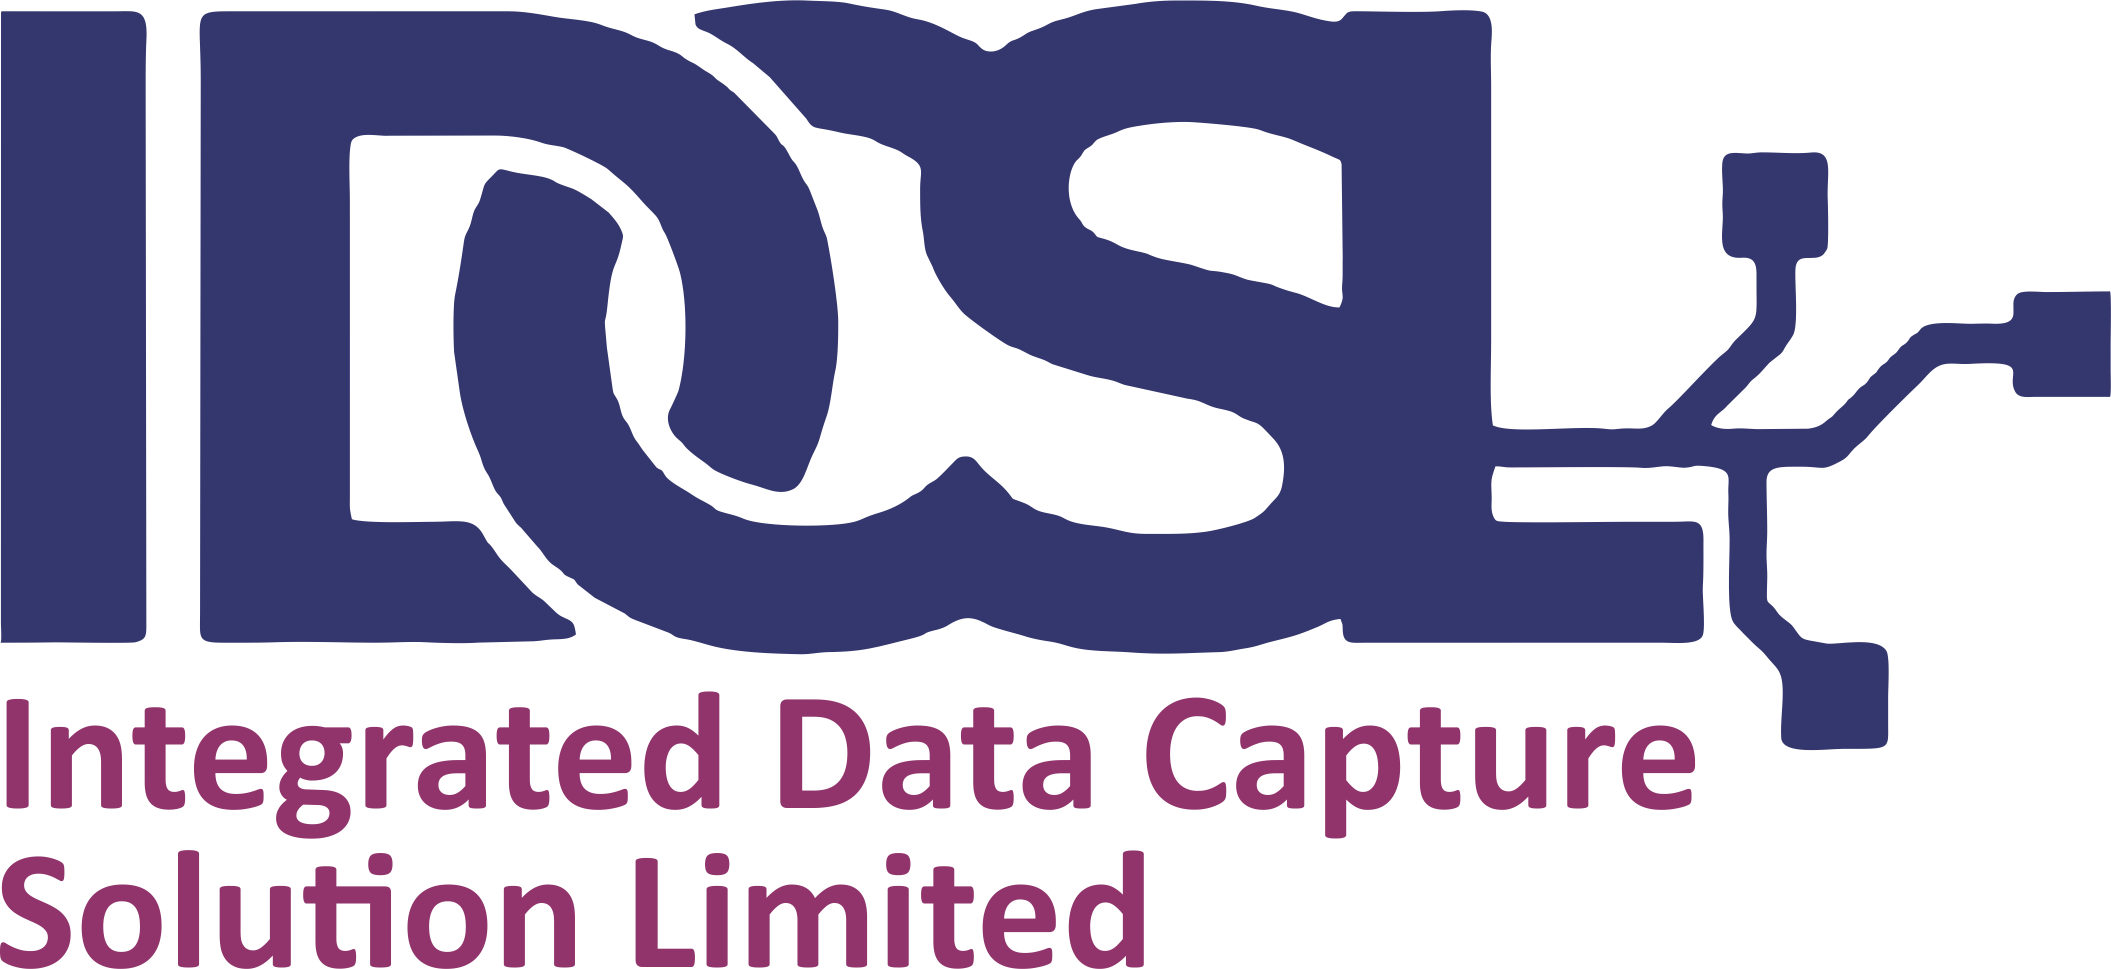 Integrated Data Capture Solution Limited - Integrated Data Capture Solution Limited